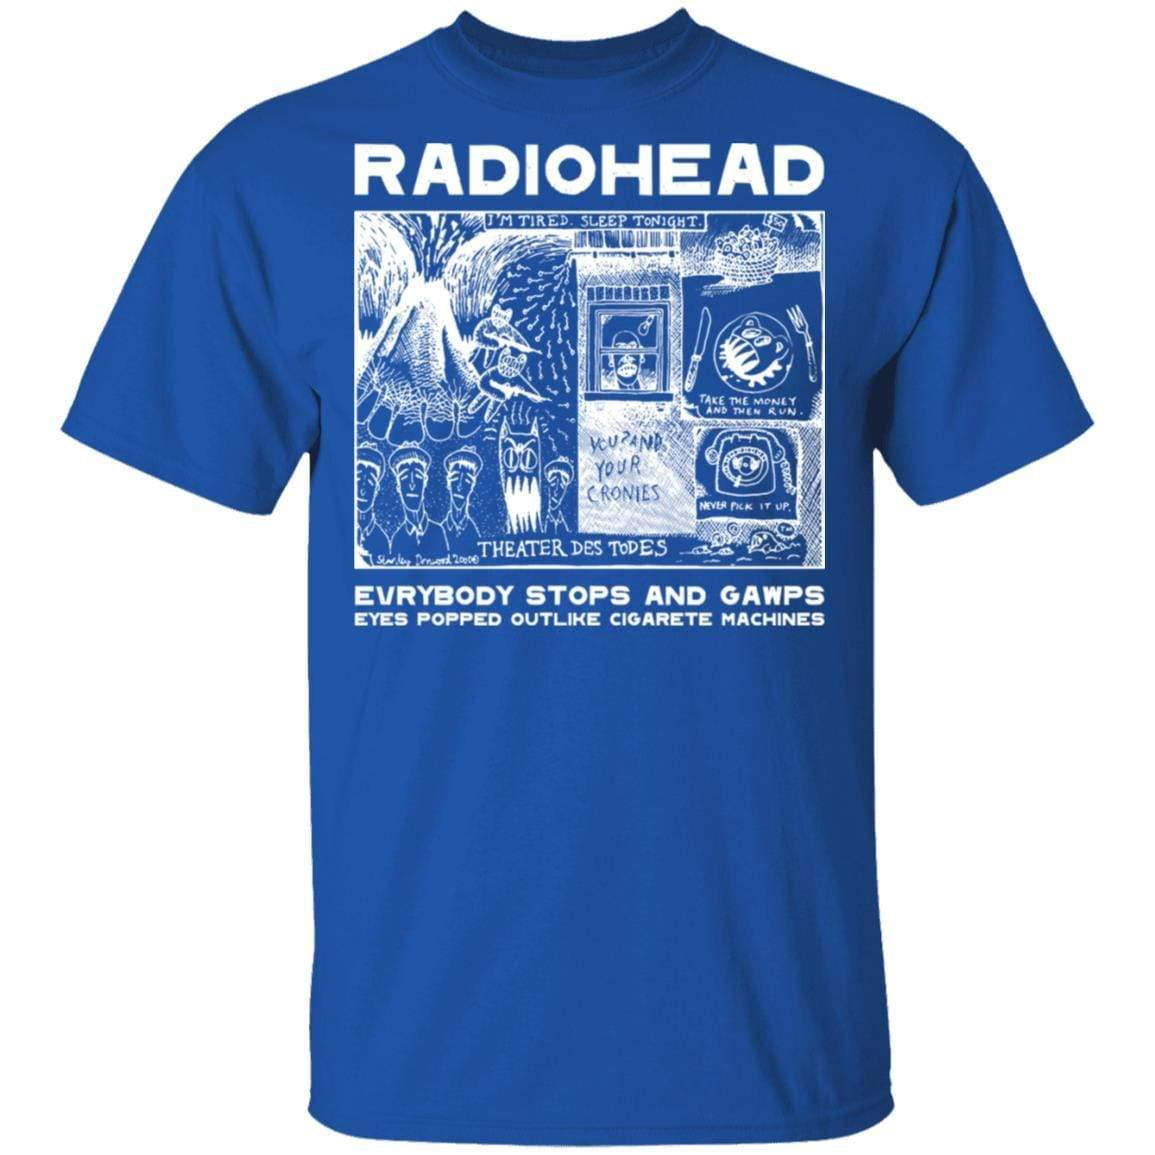 Radiohead Evrybody Stops And Gawps Eyes Popped Outlike Cigarete Machines T-Shirts, Hoodies 1049-9971-87589175-48286 - Tee Ript